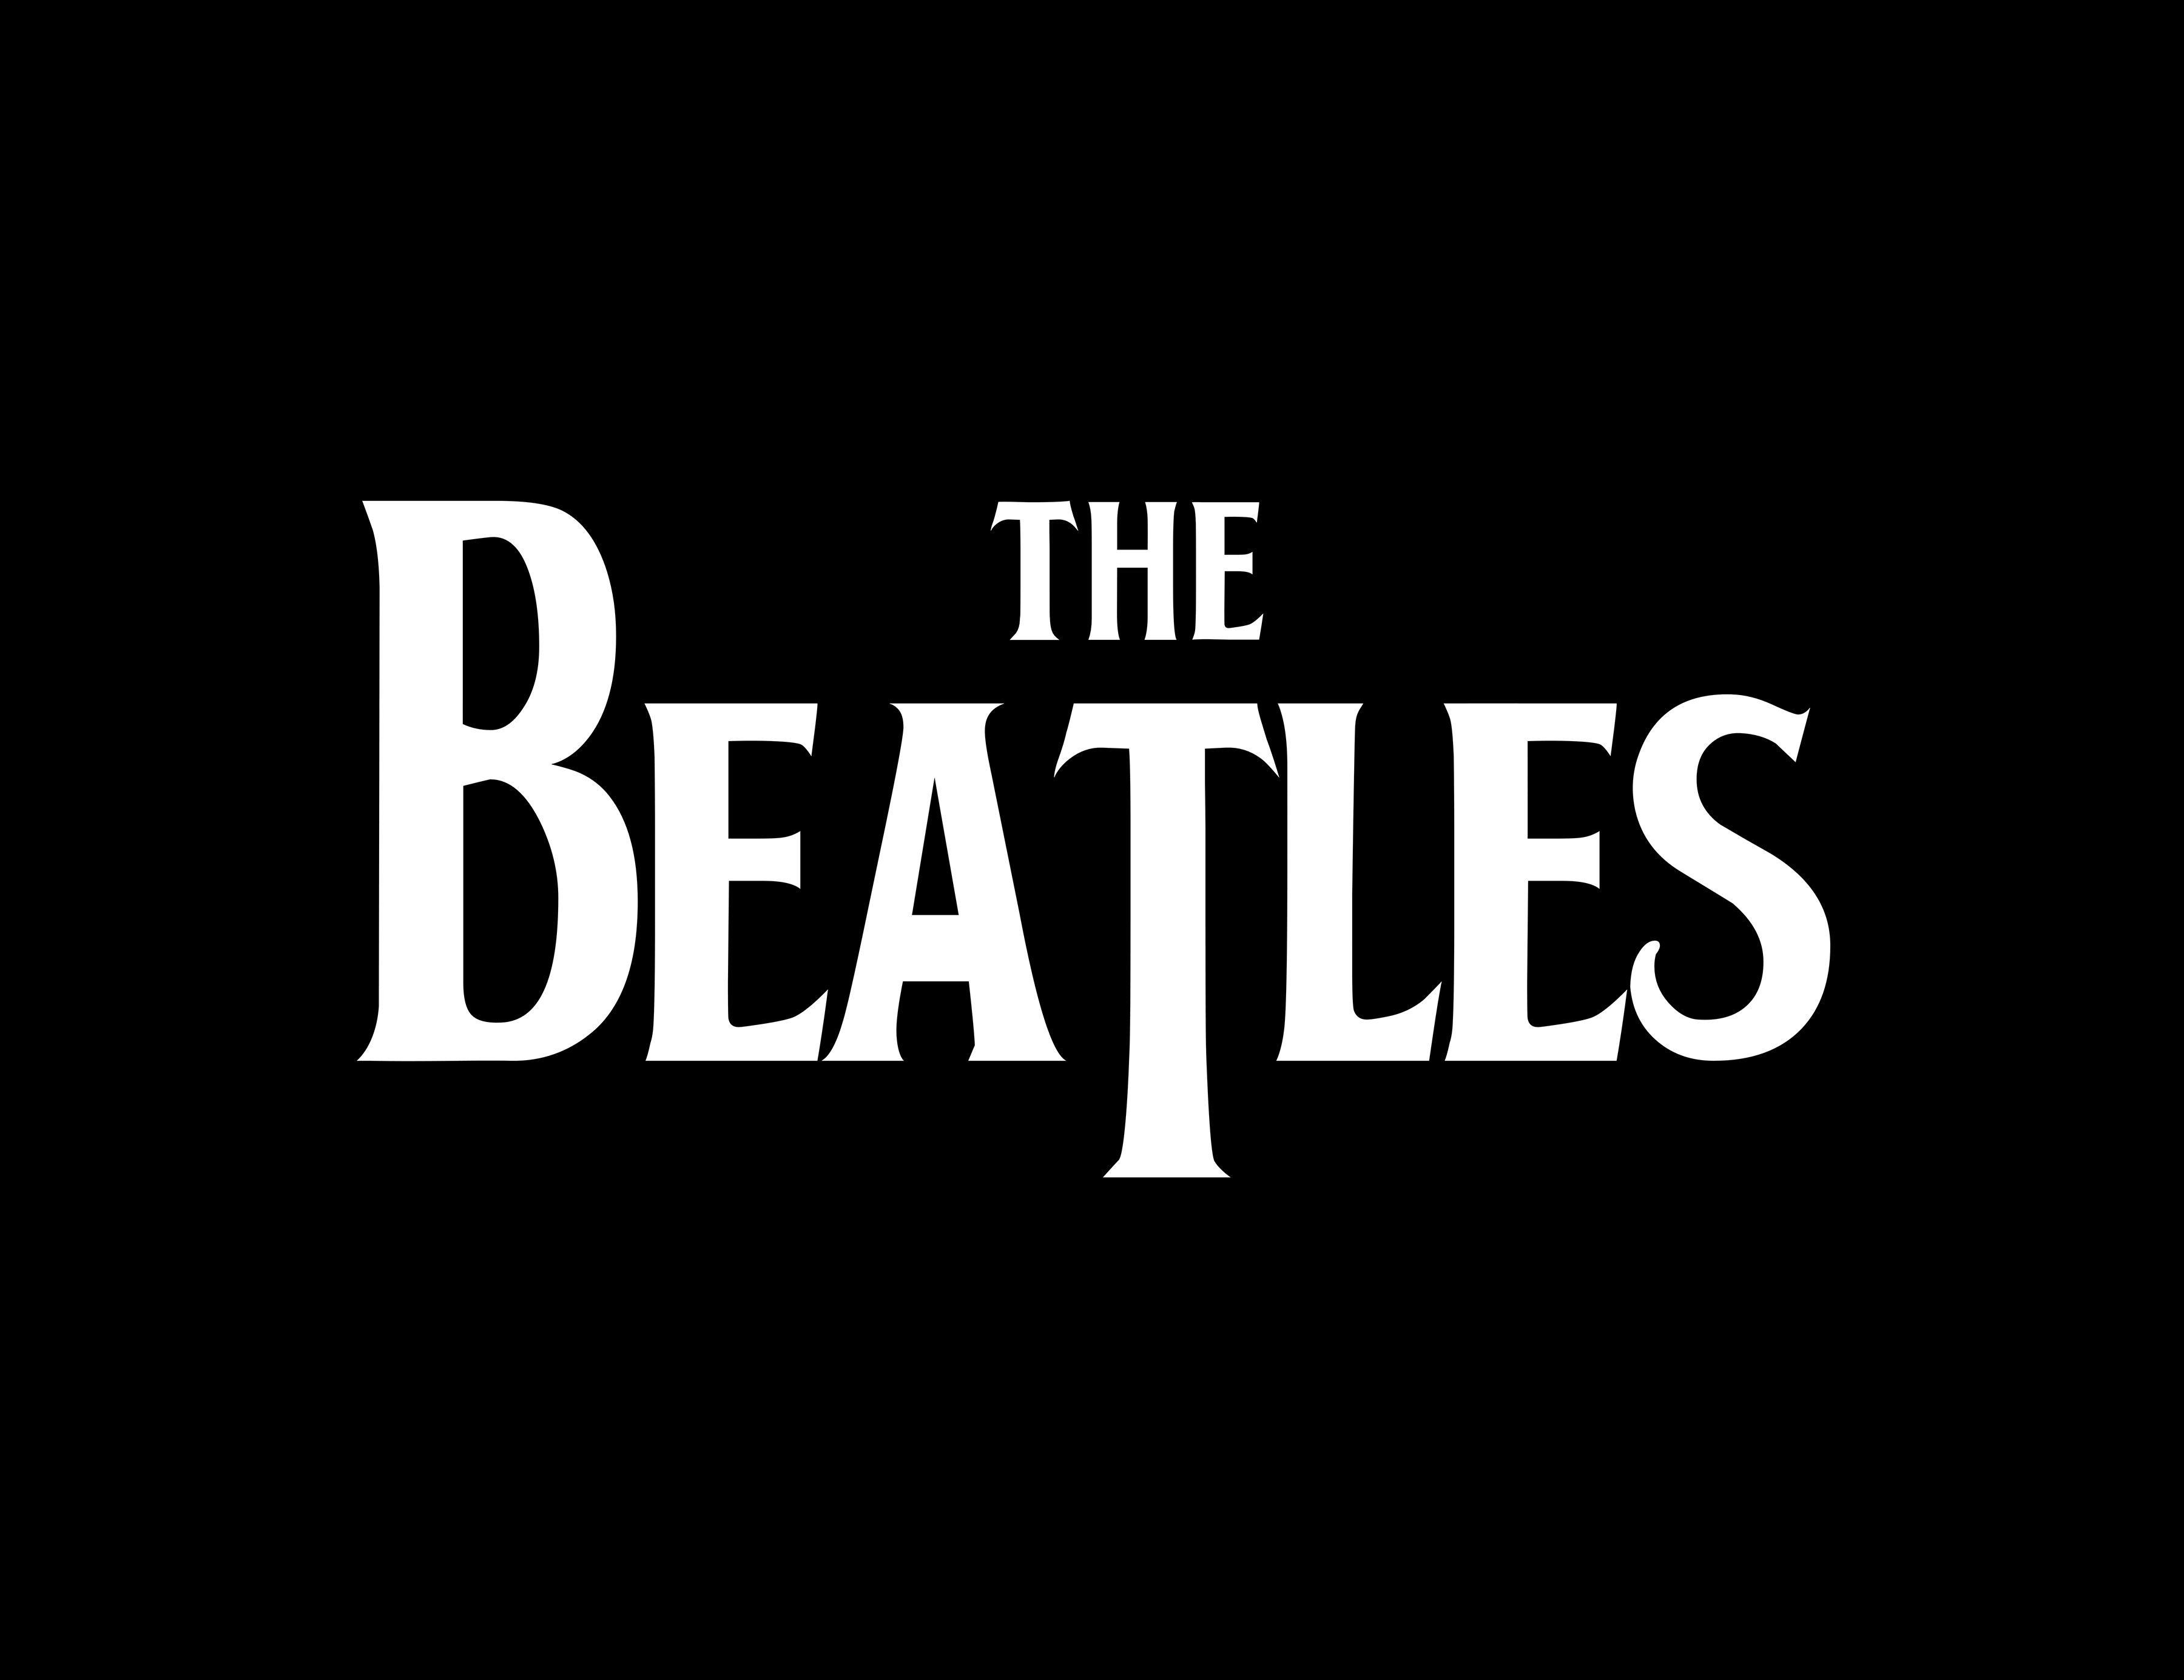 The Beatles Logo Custom Font English Rock Band Music Brand